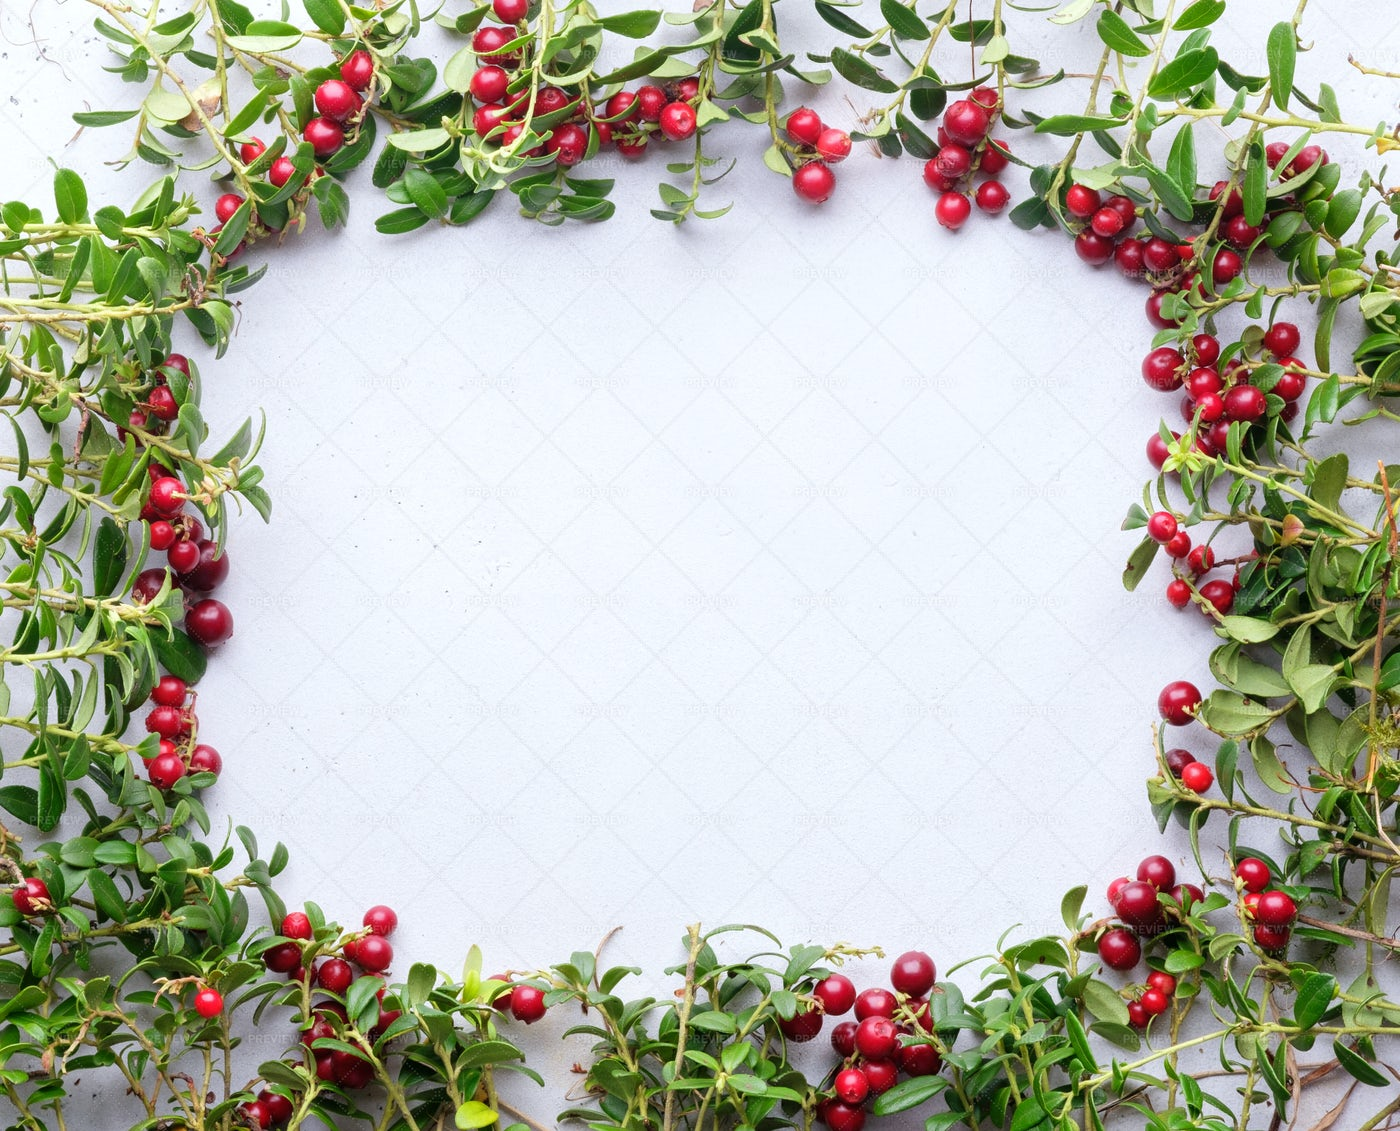 Frame Of Of Lingonberry: Stock Photos